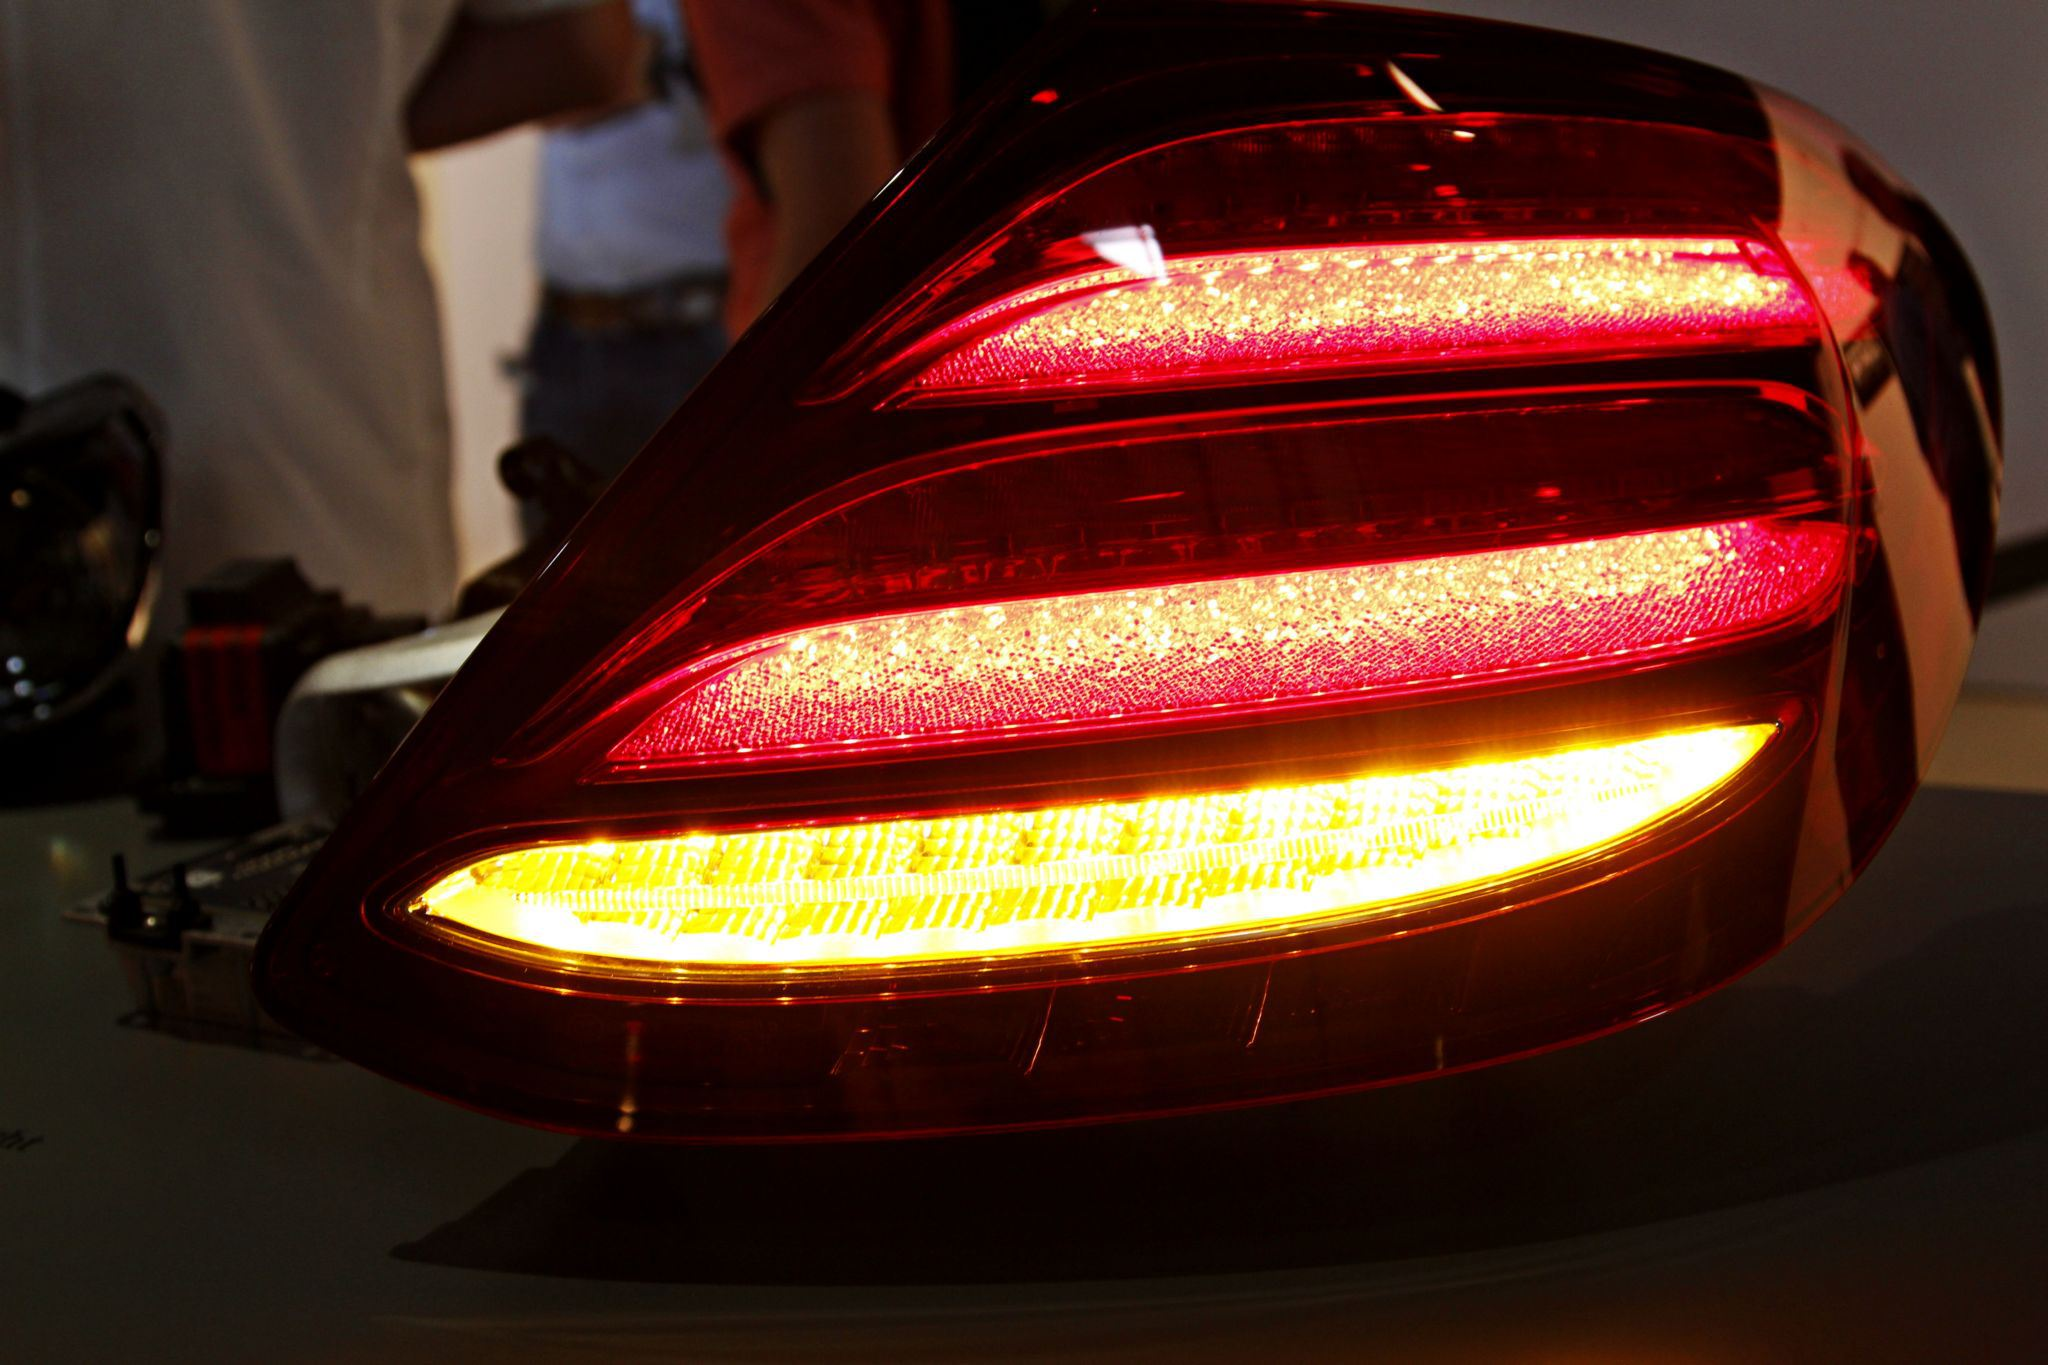 Used 2016 Nissan Maxima >> How to Tint Your Car's Taillights - autoevolution